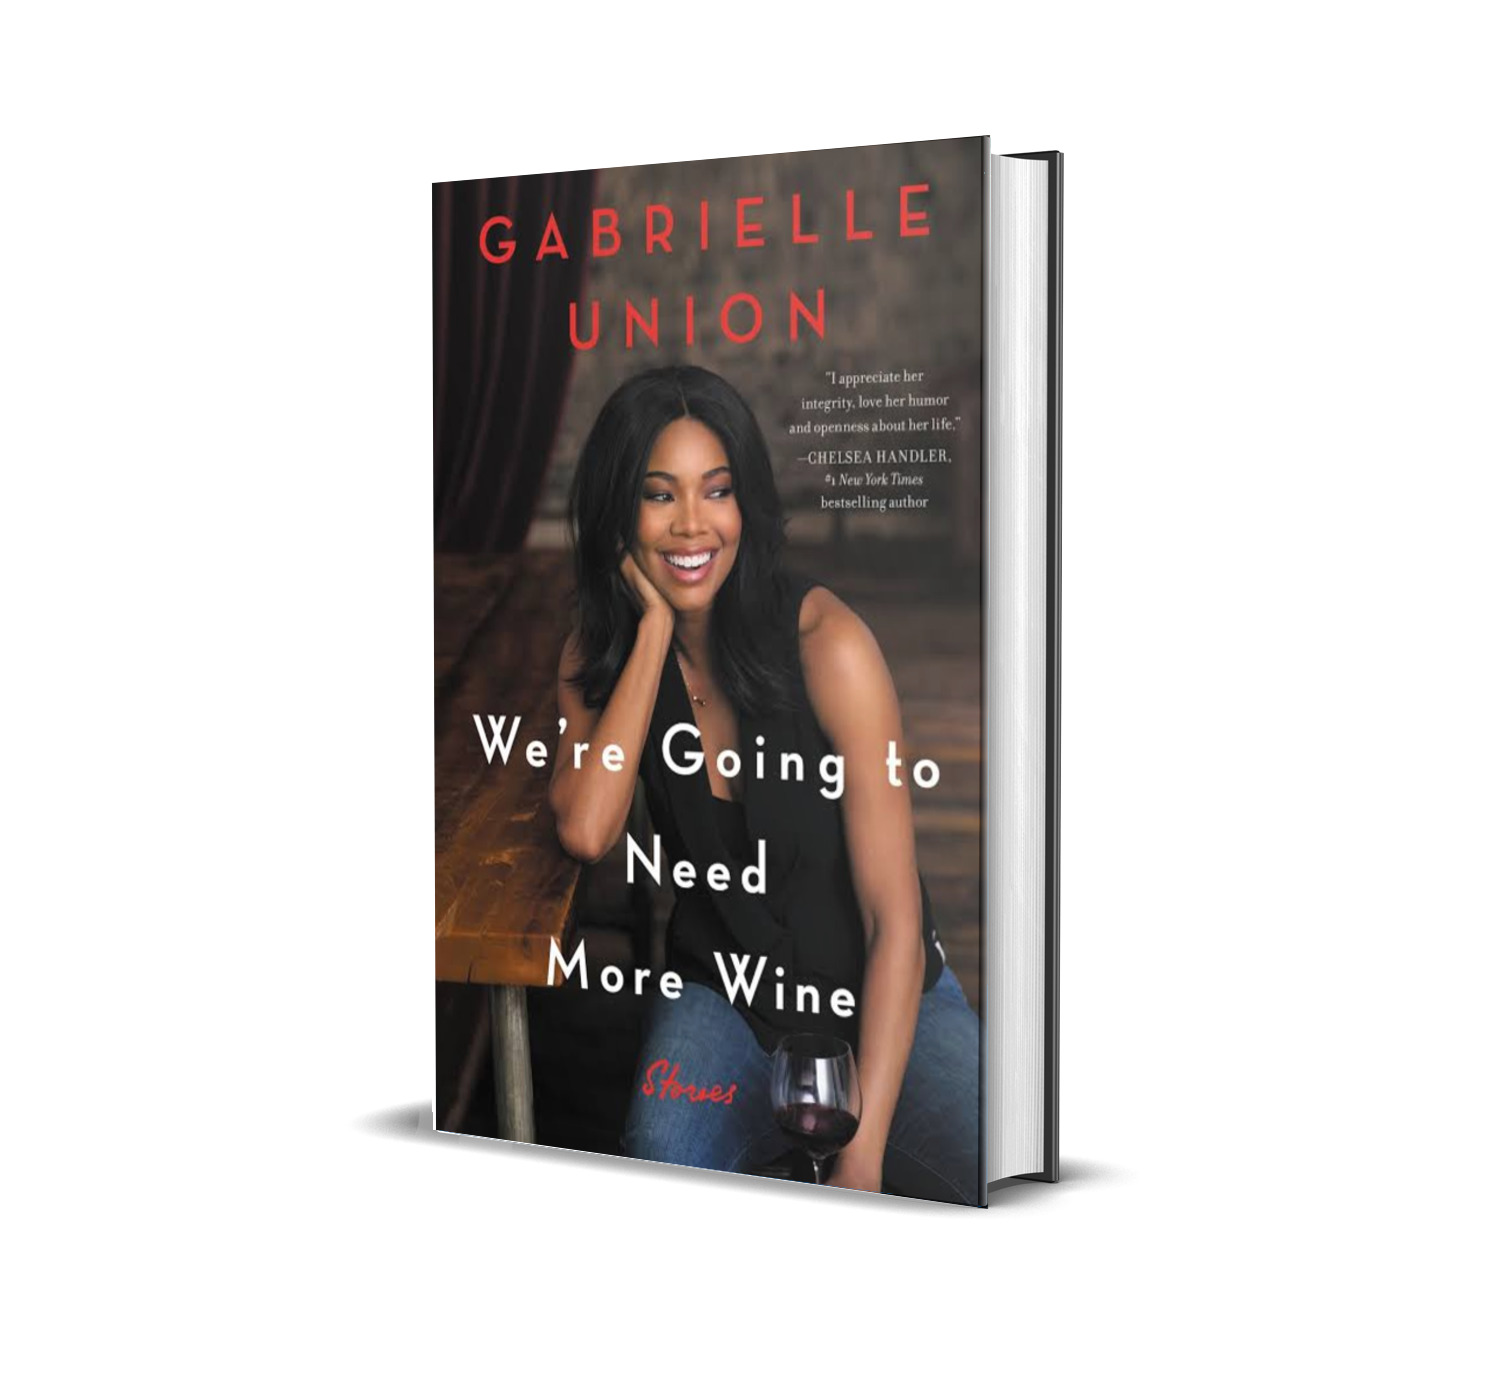 We're going to need more wine- Gabrielle Union